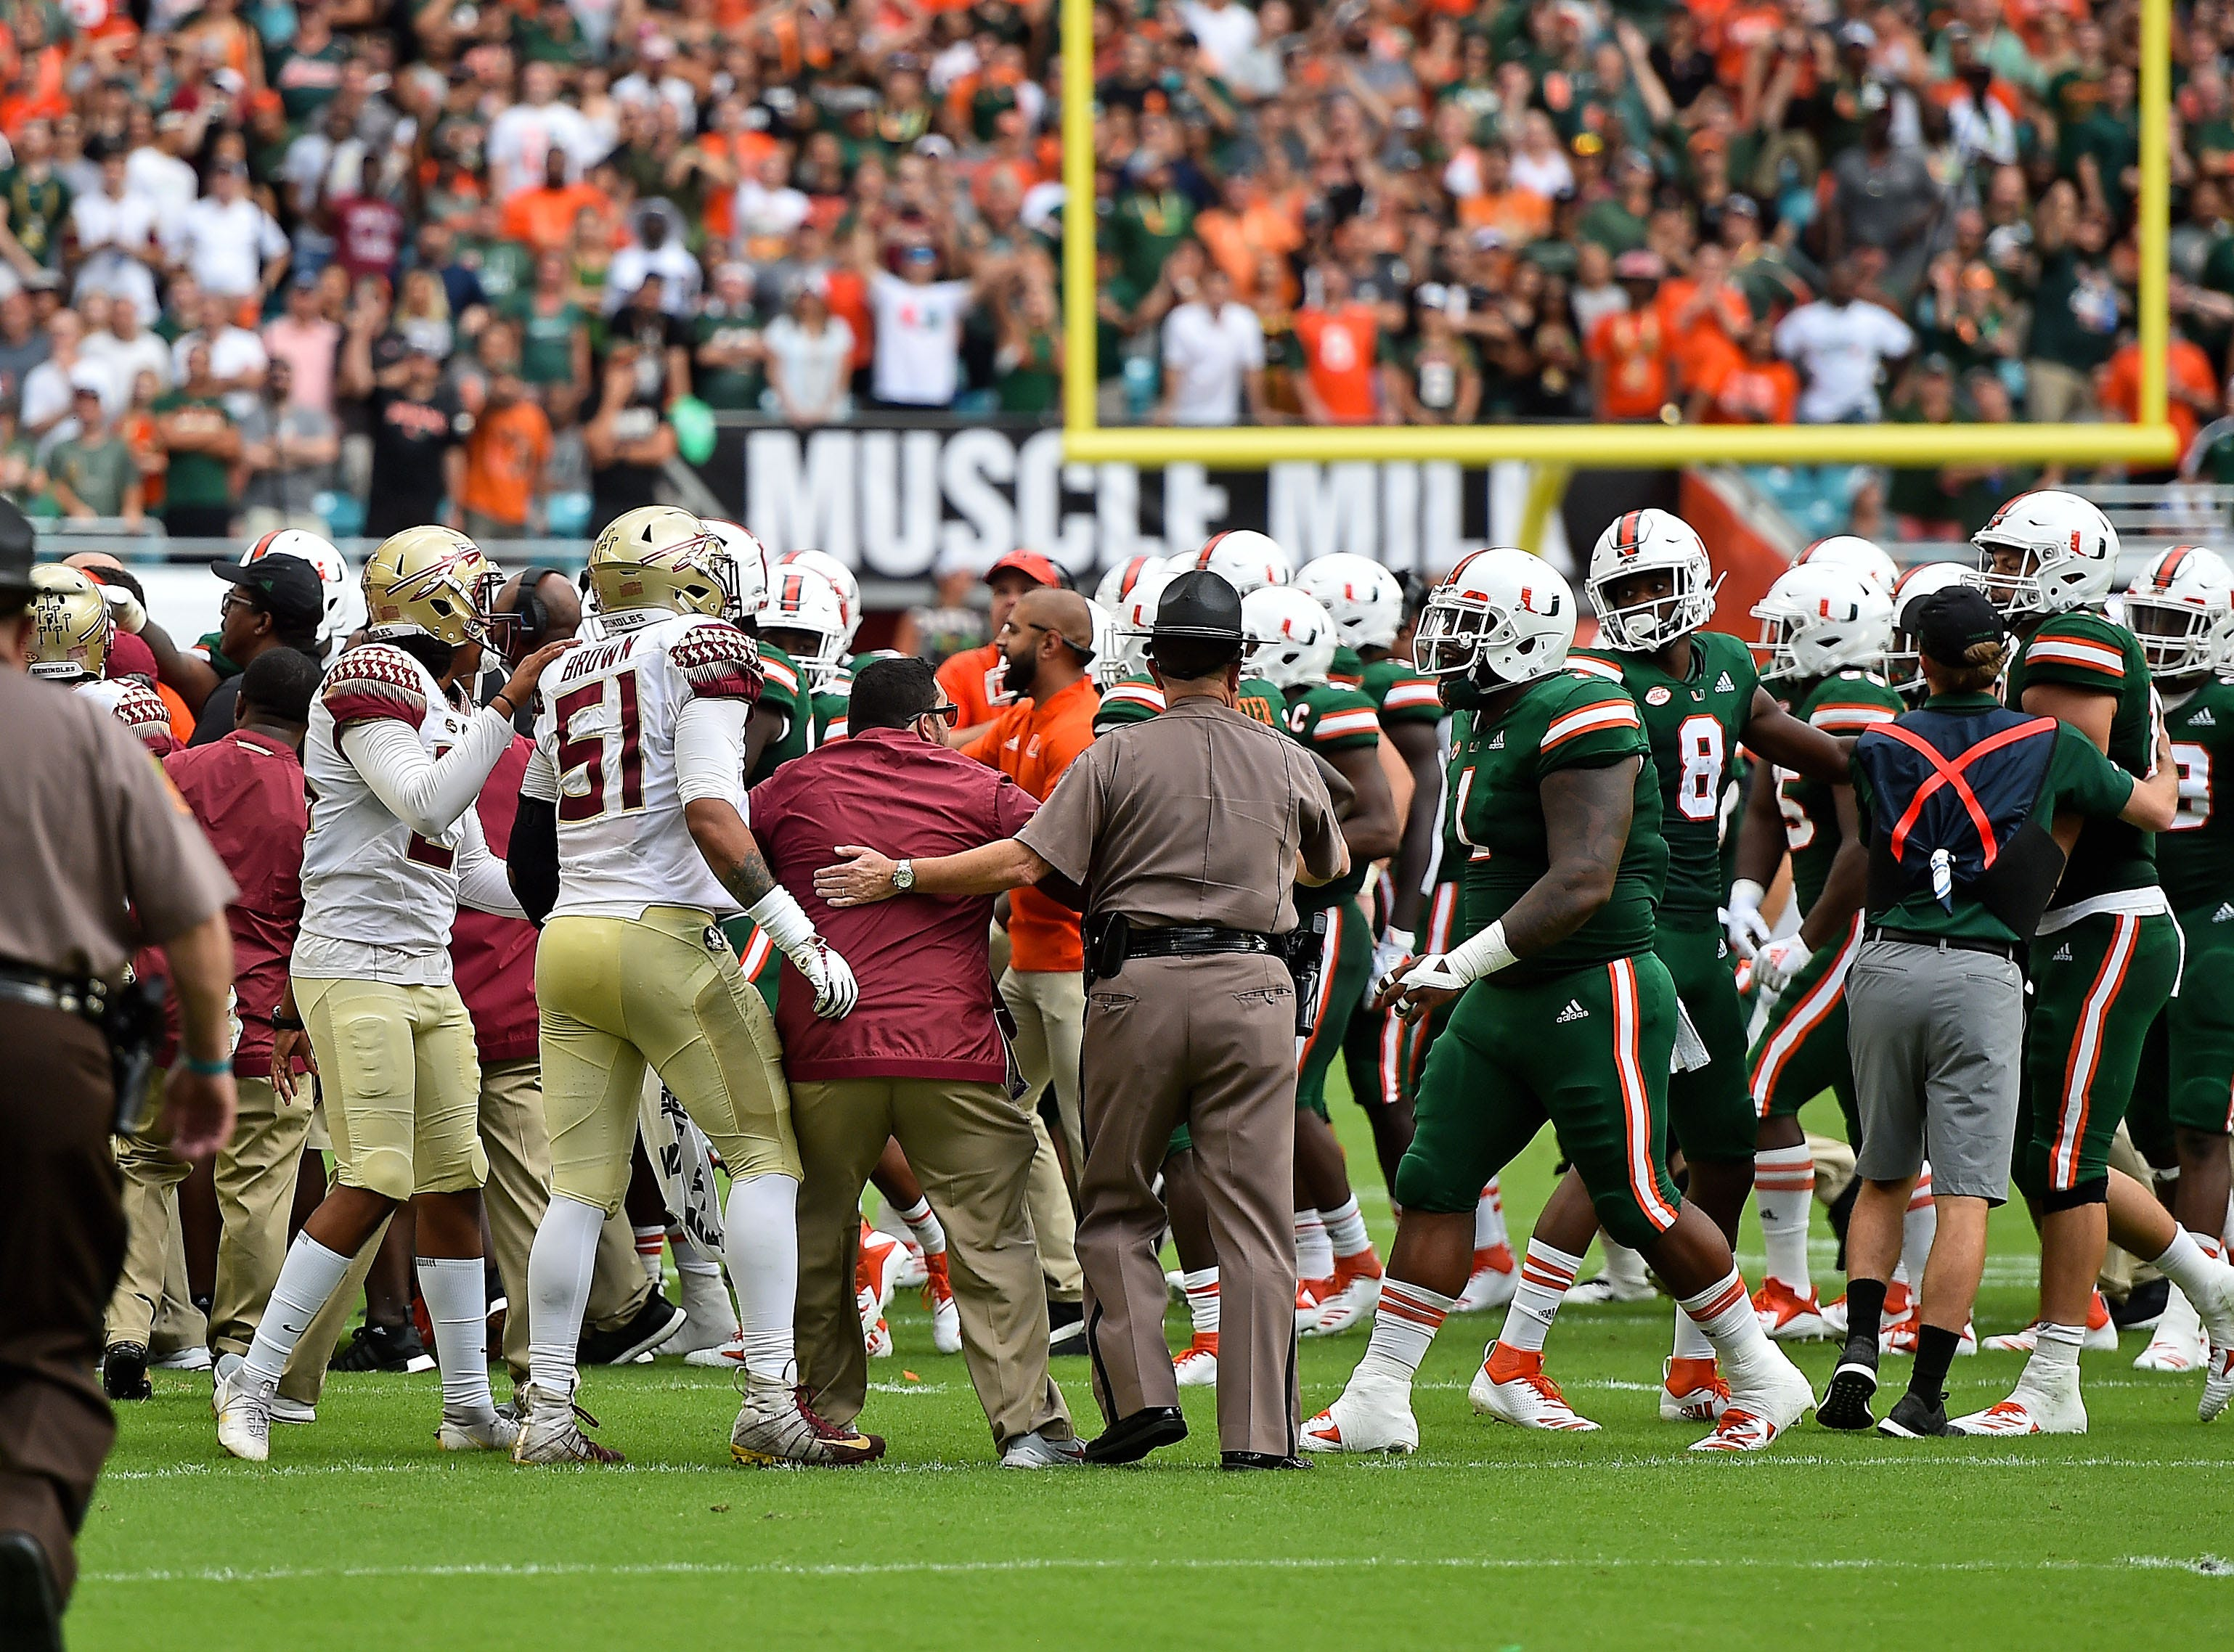 Oct 6, 2018; Miami Gardens, FL, USA; Florida State Seminoles and Miami Hurricanes players scuffle on the field during the first half at Hard Rock Stadium. Mandatory Credit: Jasen Vinlove-USA TODAY Sports